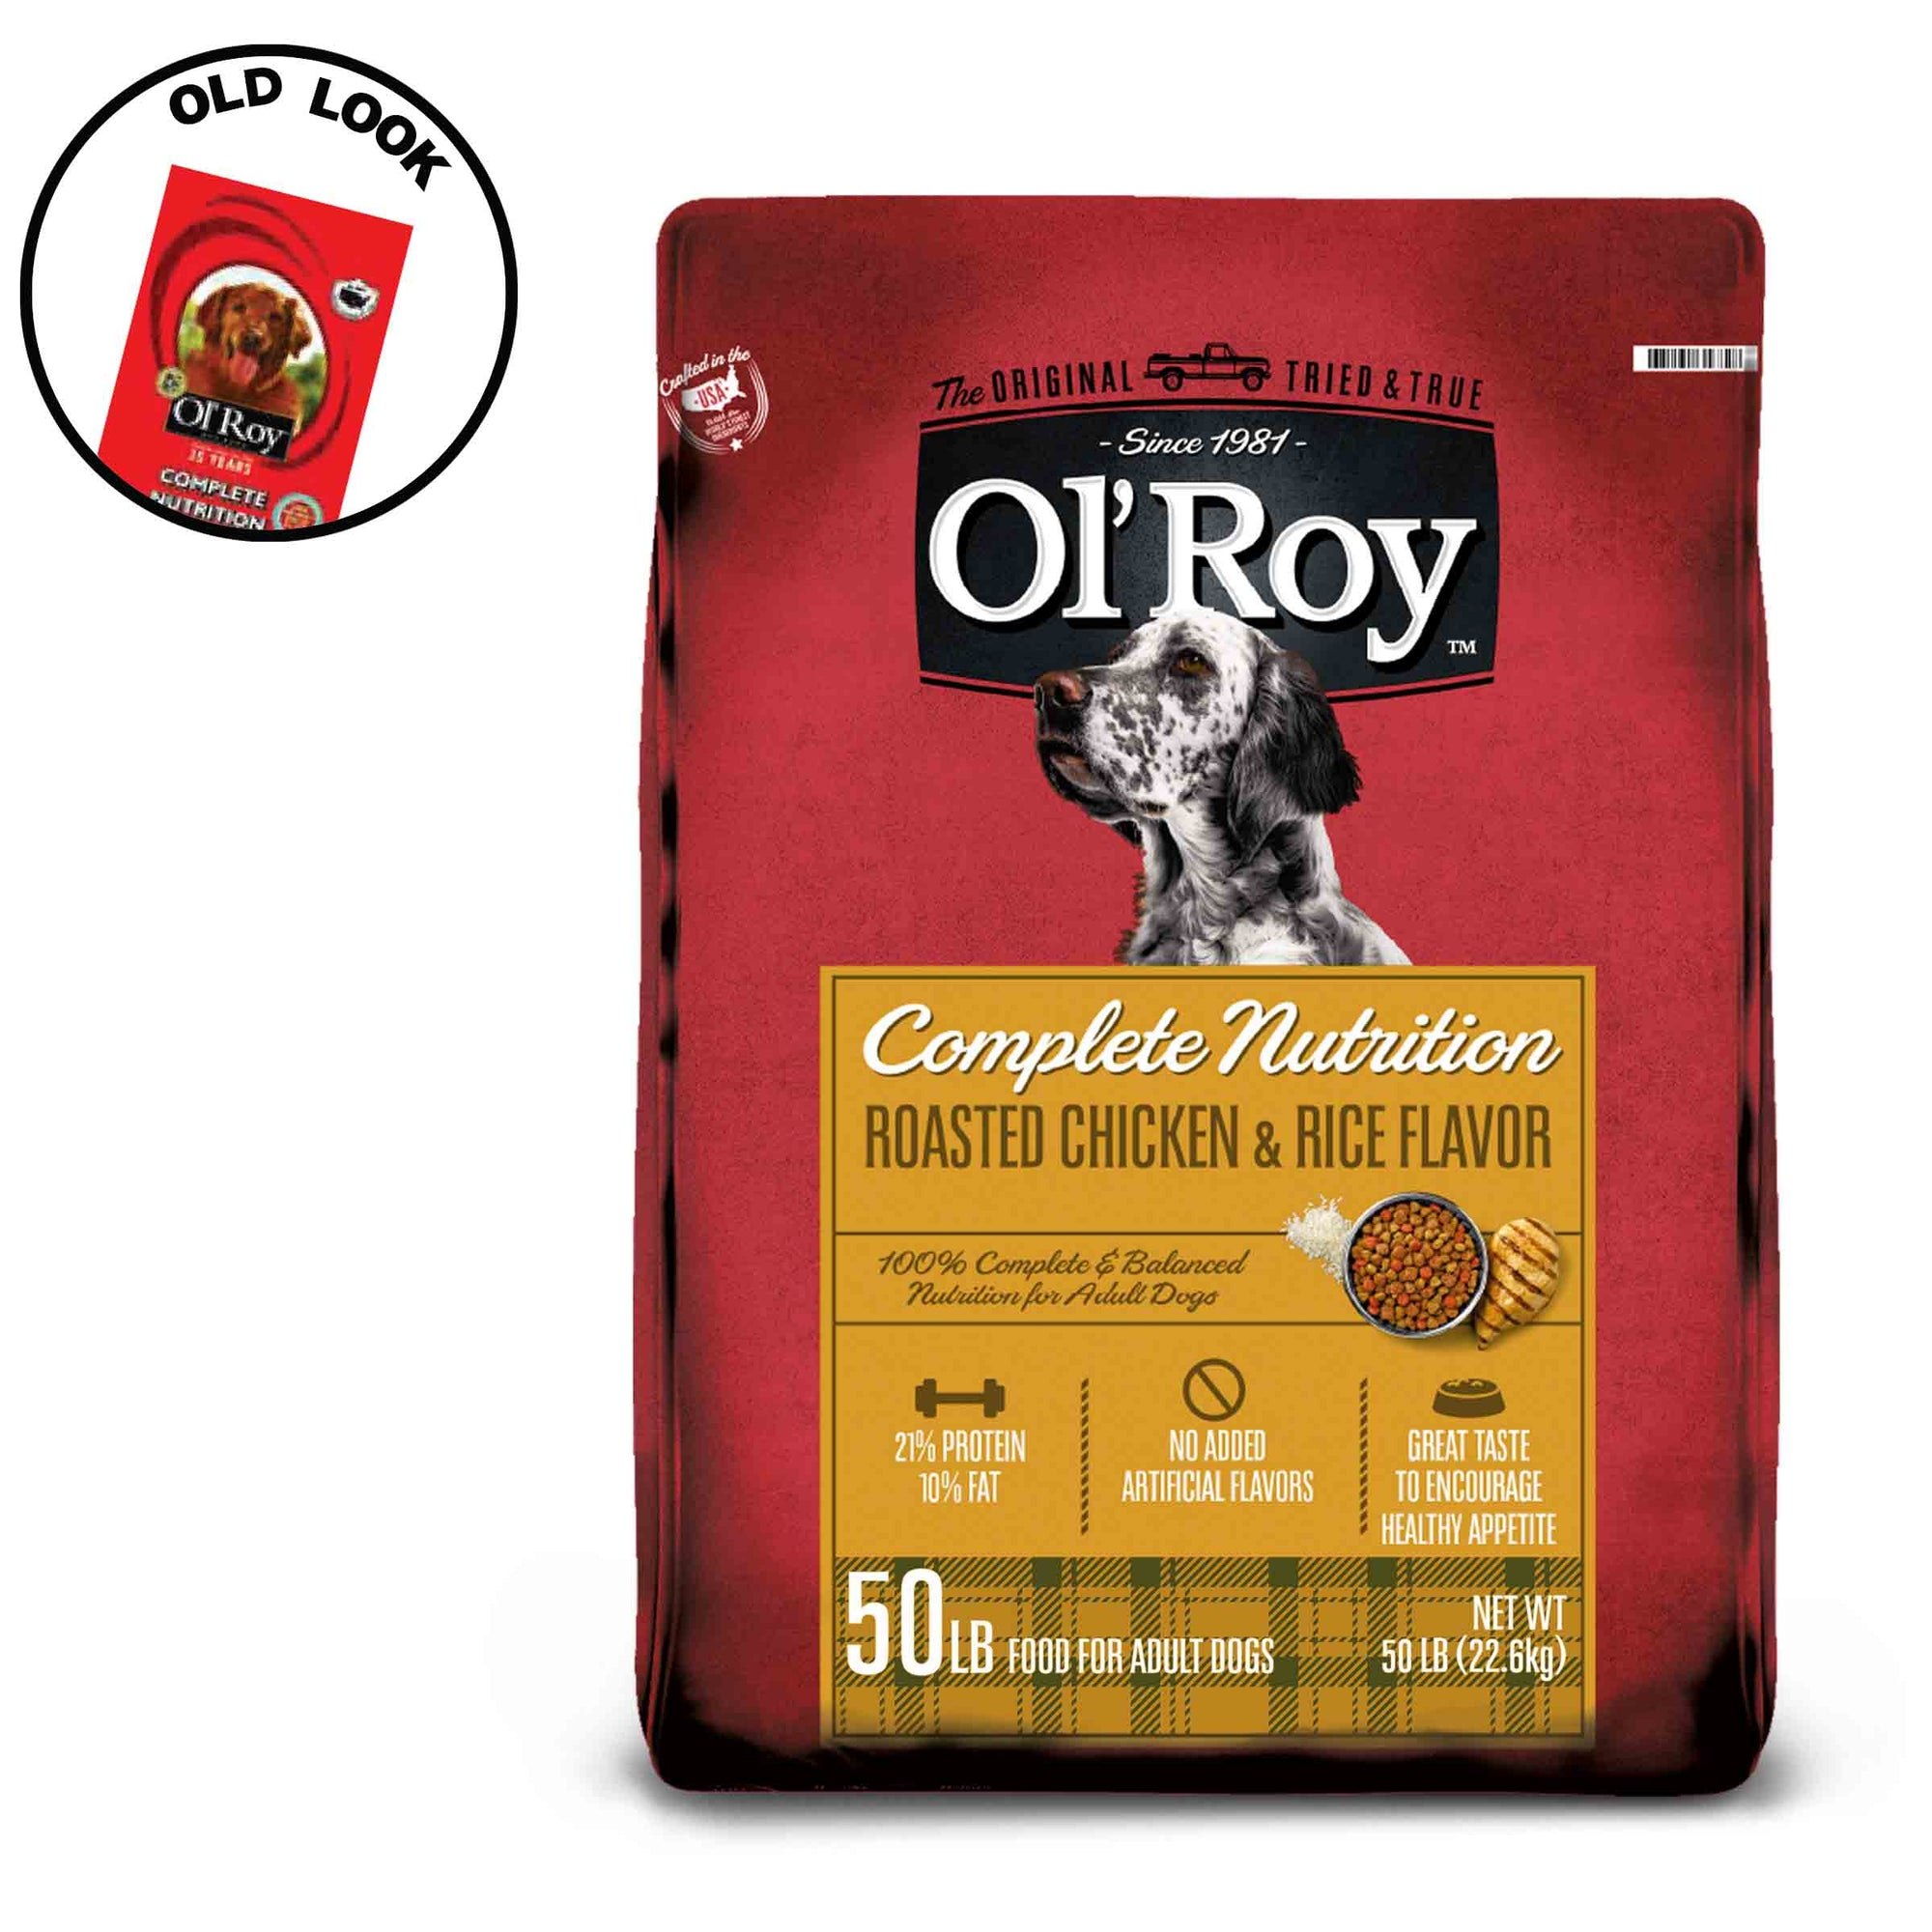 Ol' Roy Complete Nutrition Roasted Chicken & Rice Flavor Dry Dog Food, 50 lb